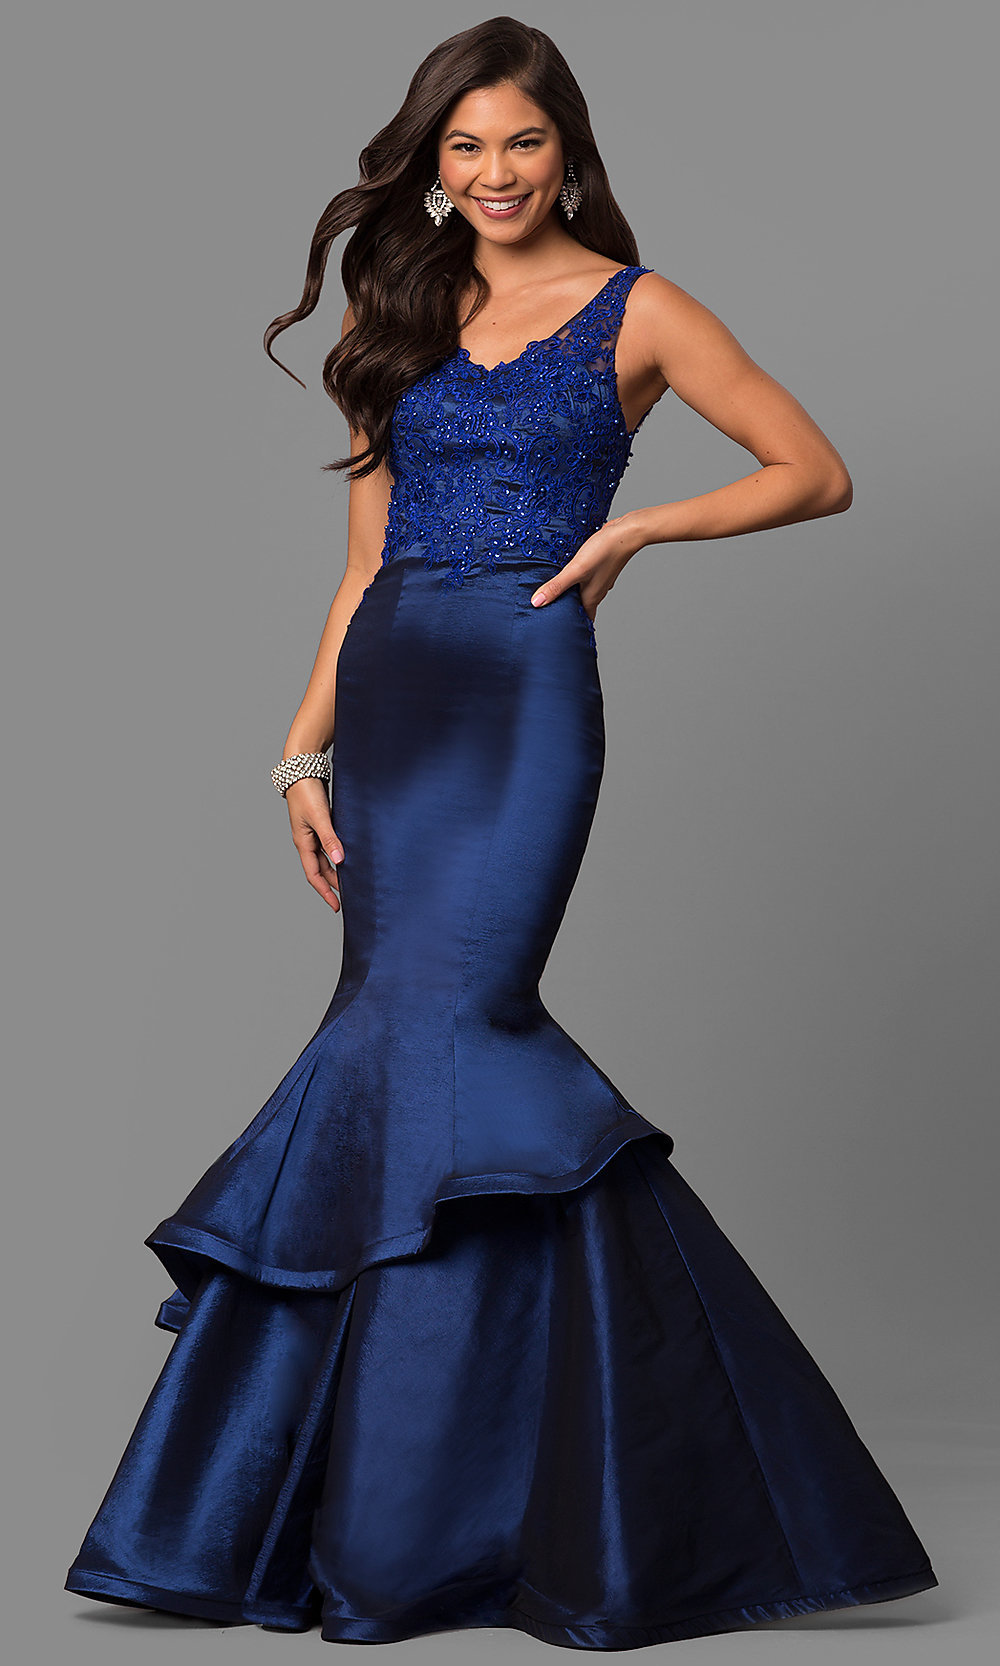 Formal Mermaid Prom Dress 2018 With V Neck Promgirl